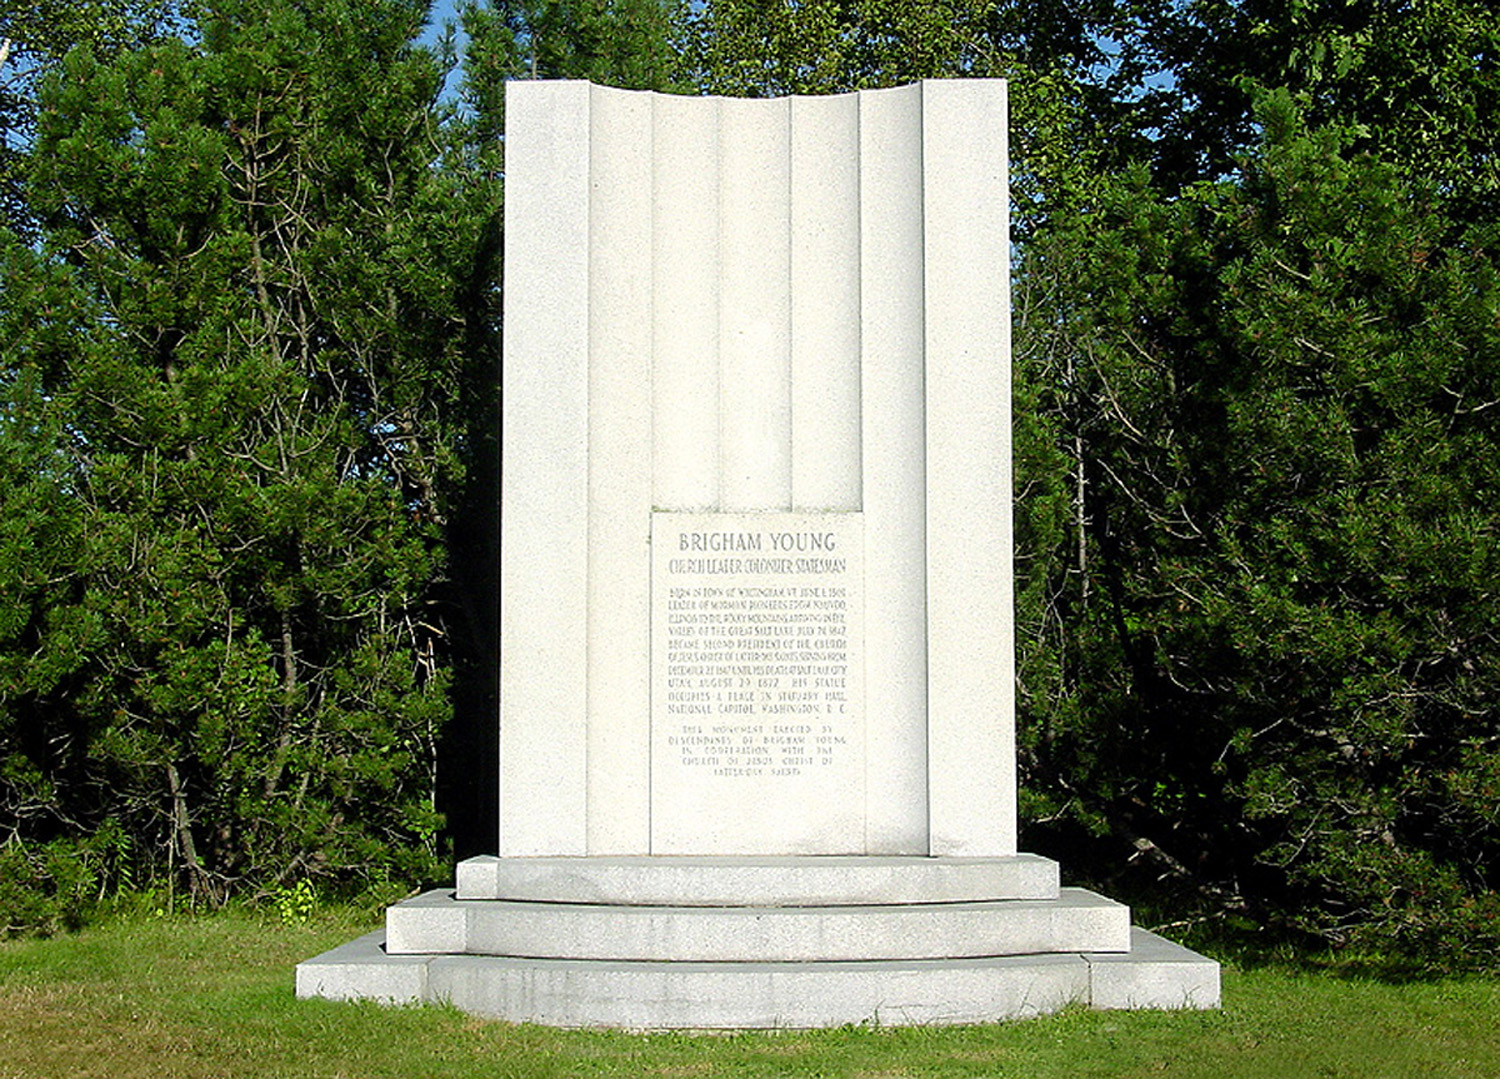 Monument honoring Brigham Young, Whitingham, Vermont.